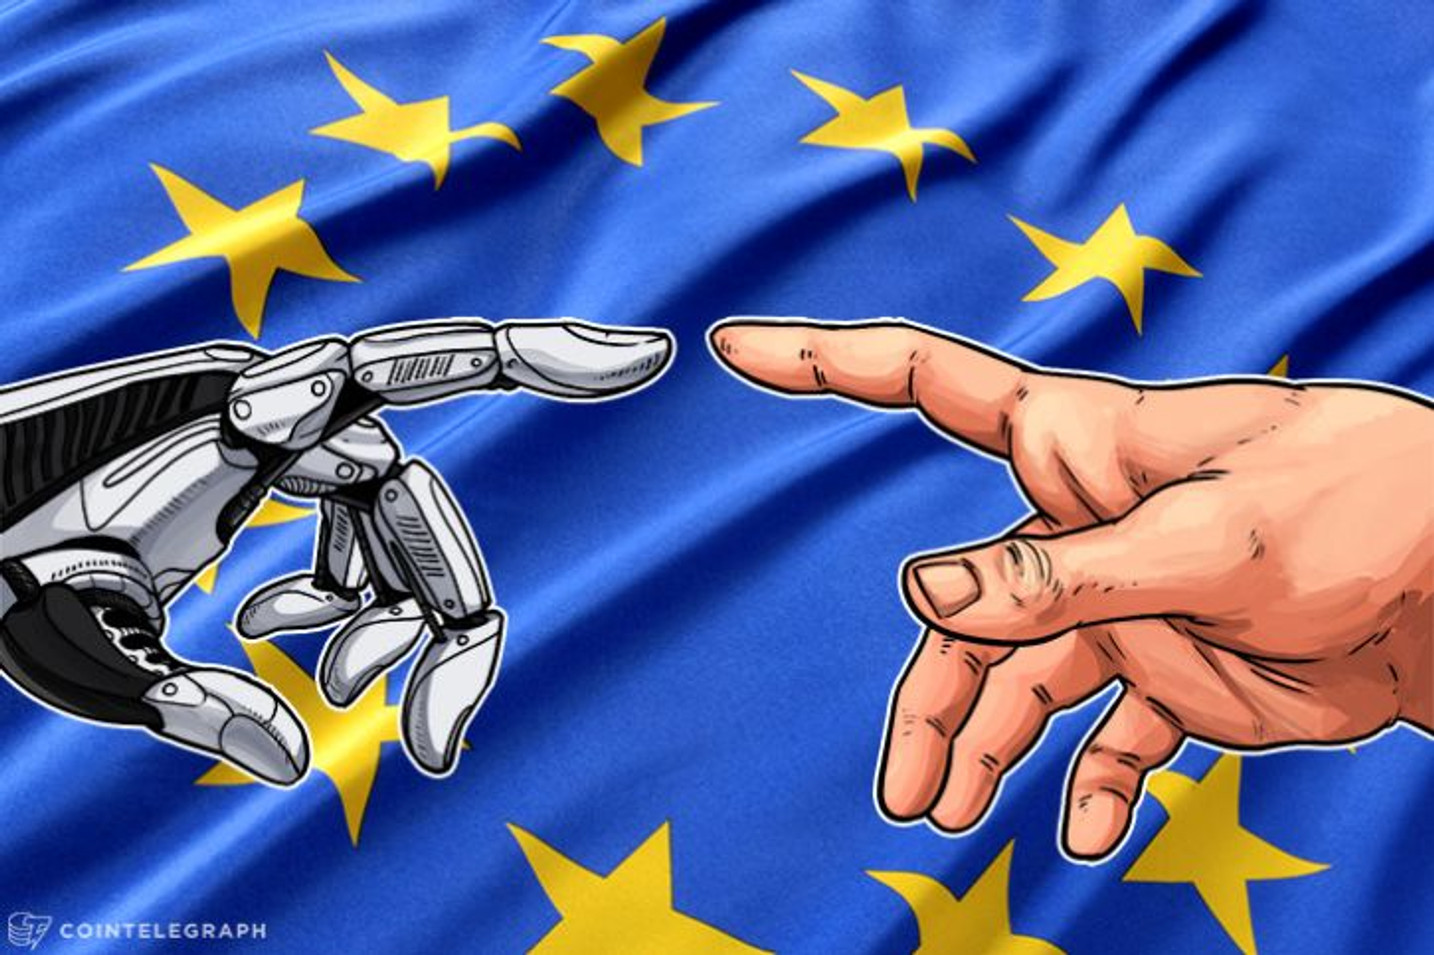 British Treasury Plans to Implement EU-Wide Cryptocurrency Regulation by Late 2018